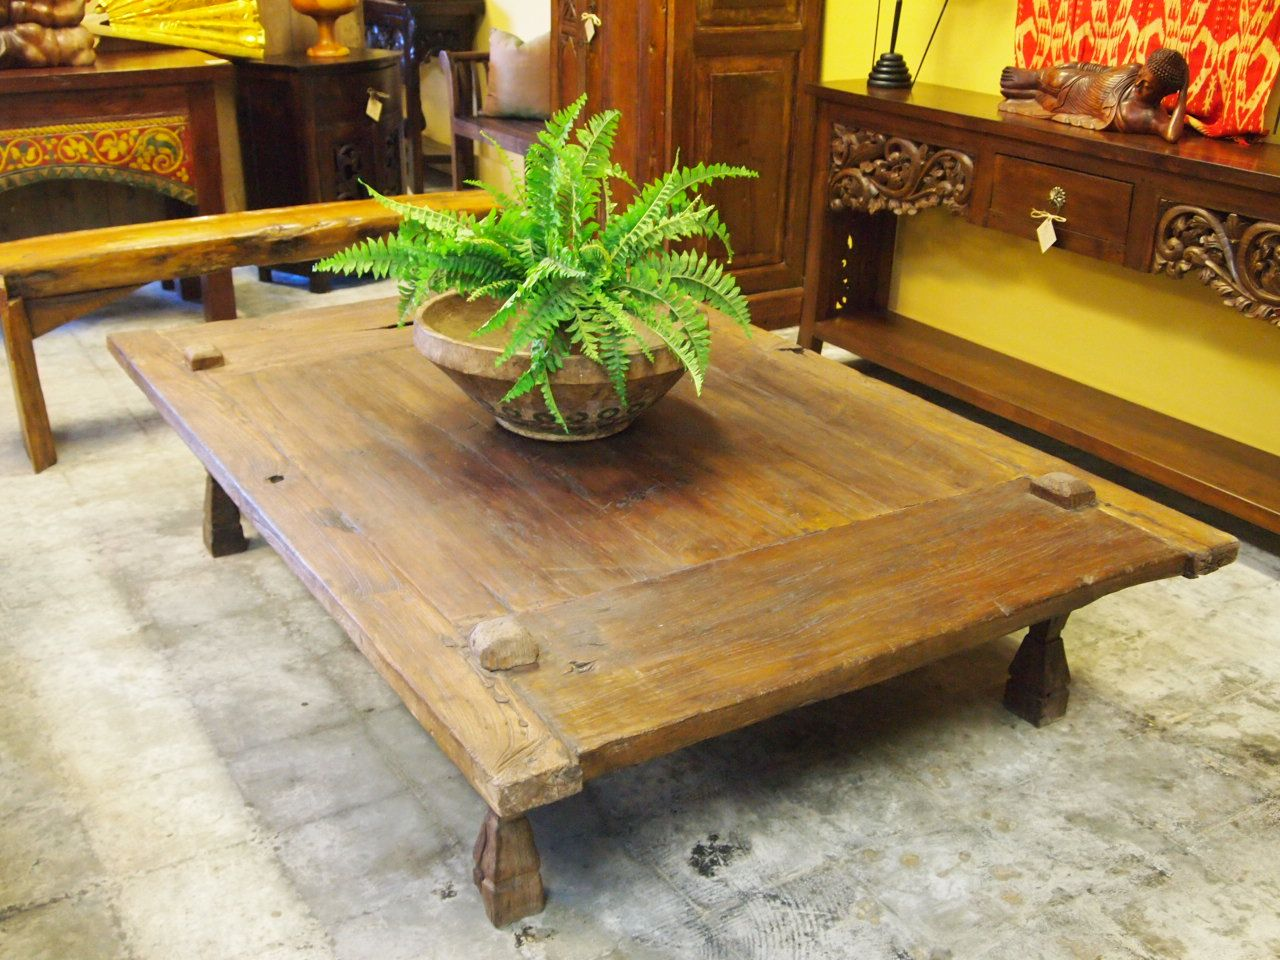 This Antique Weaving Table Has A Great History And Makes A Beautiful Coffee  Table. Visit